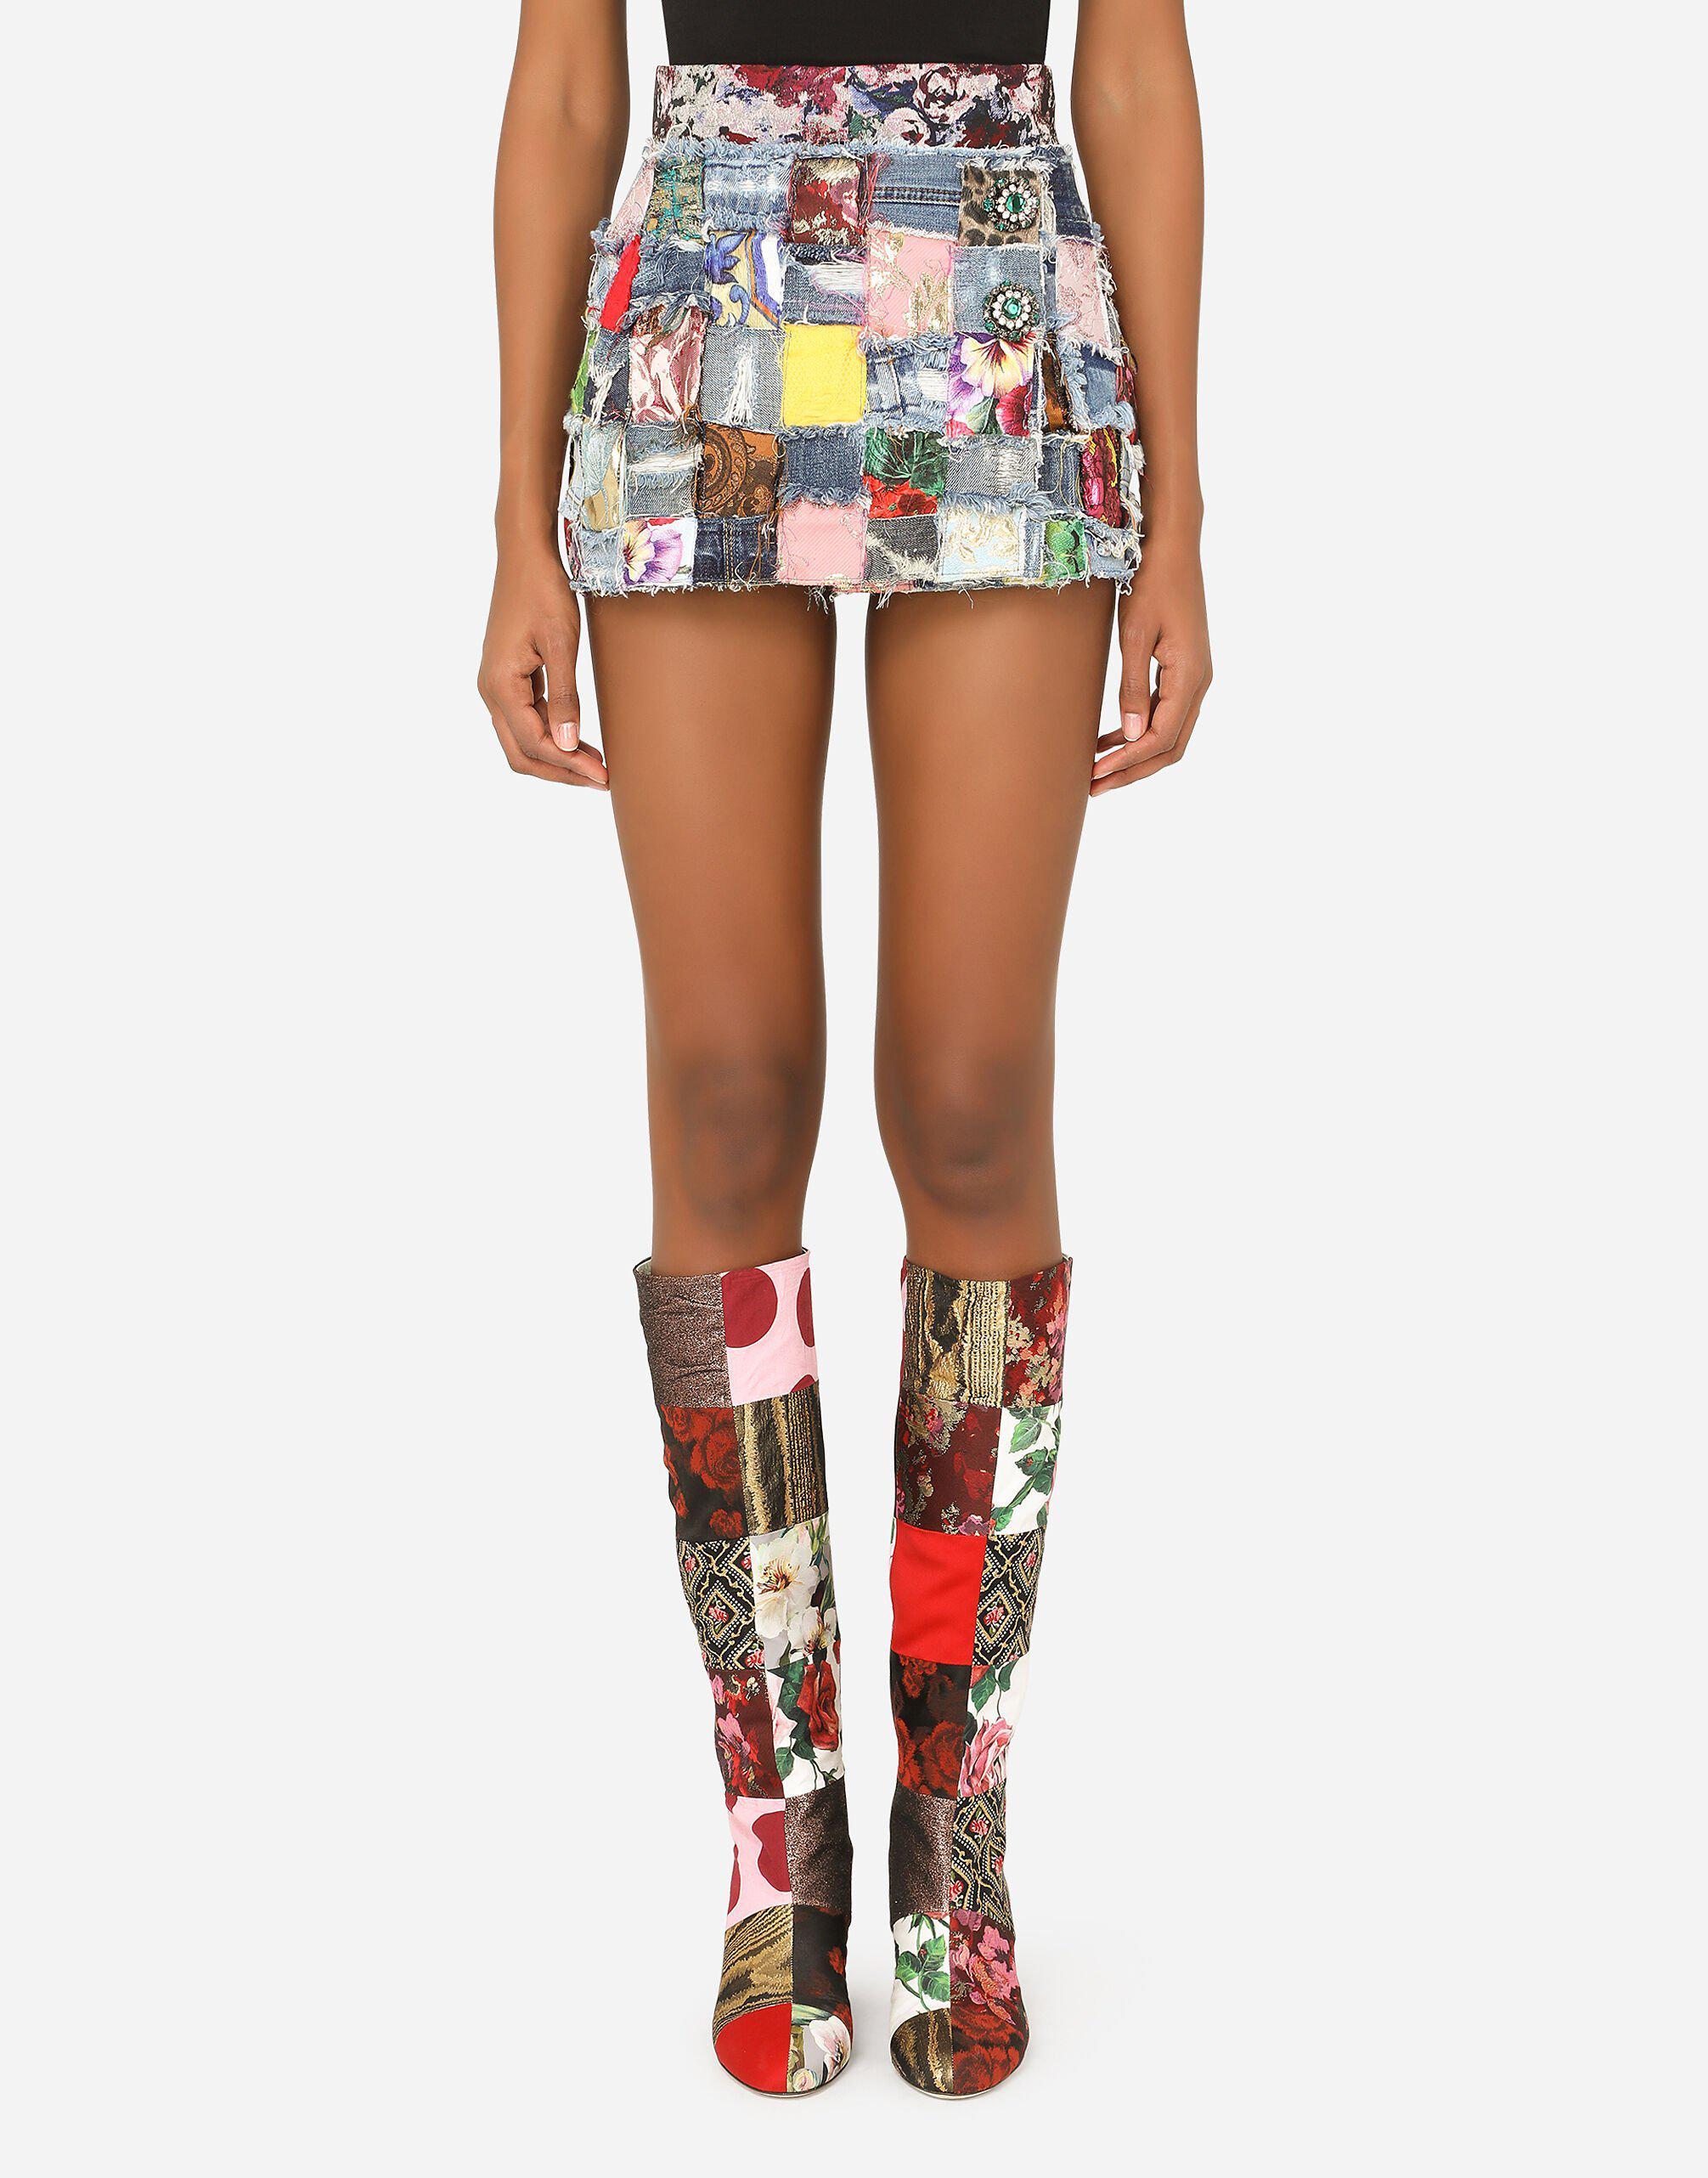 Denim miniskirt with interwoven patchwork detailing and bejeweled buttons 0